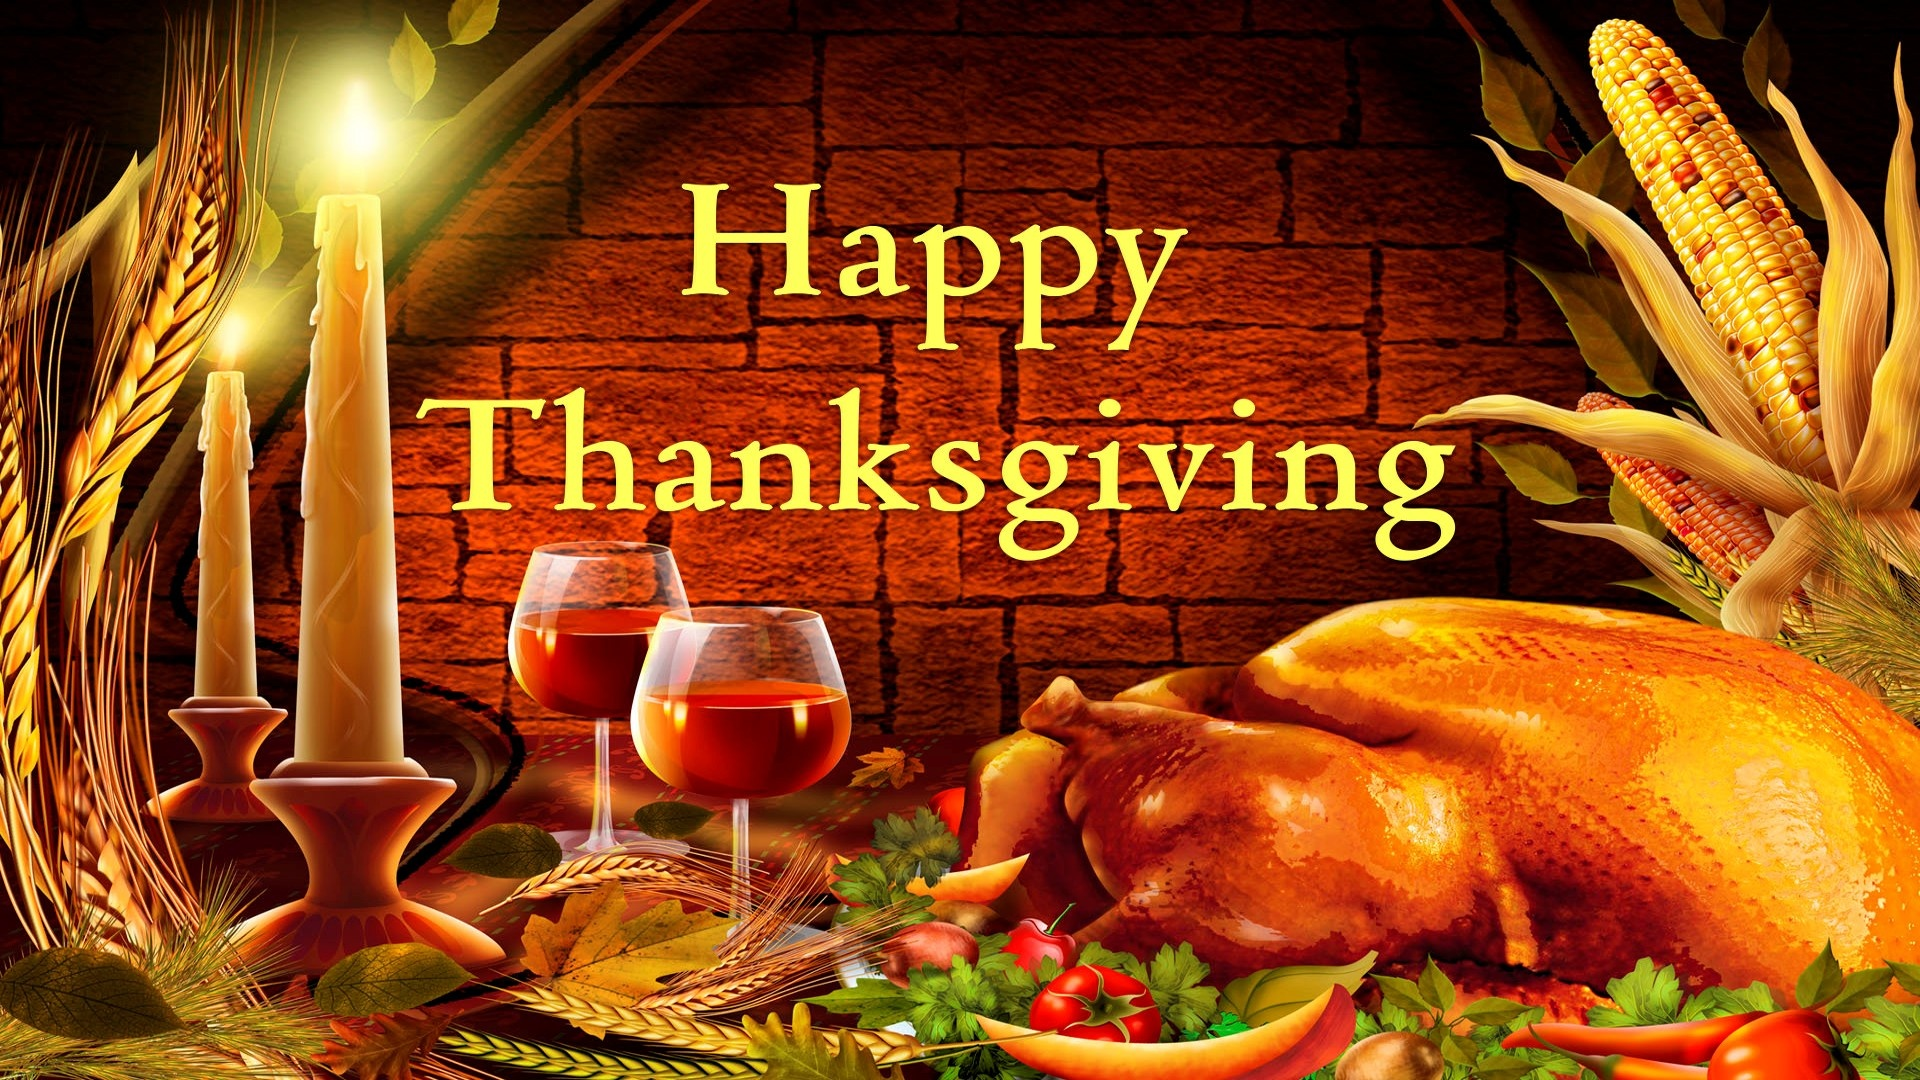 Thanksgiving wallpaper wallpapersafari - Thanksgiving screen backgrounds ...